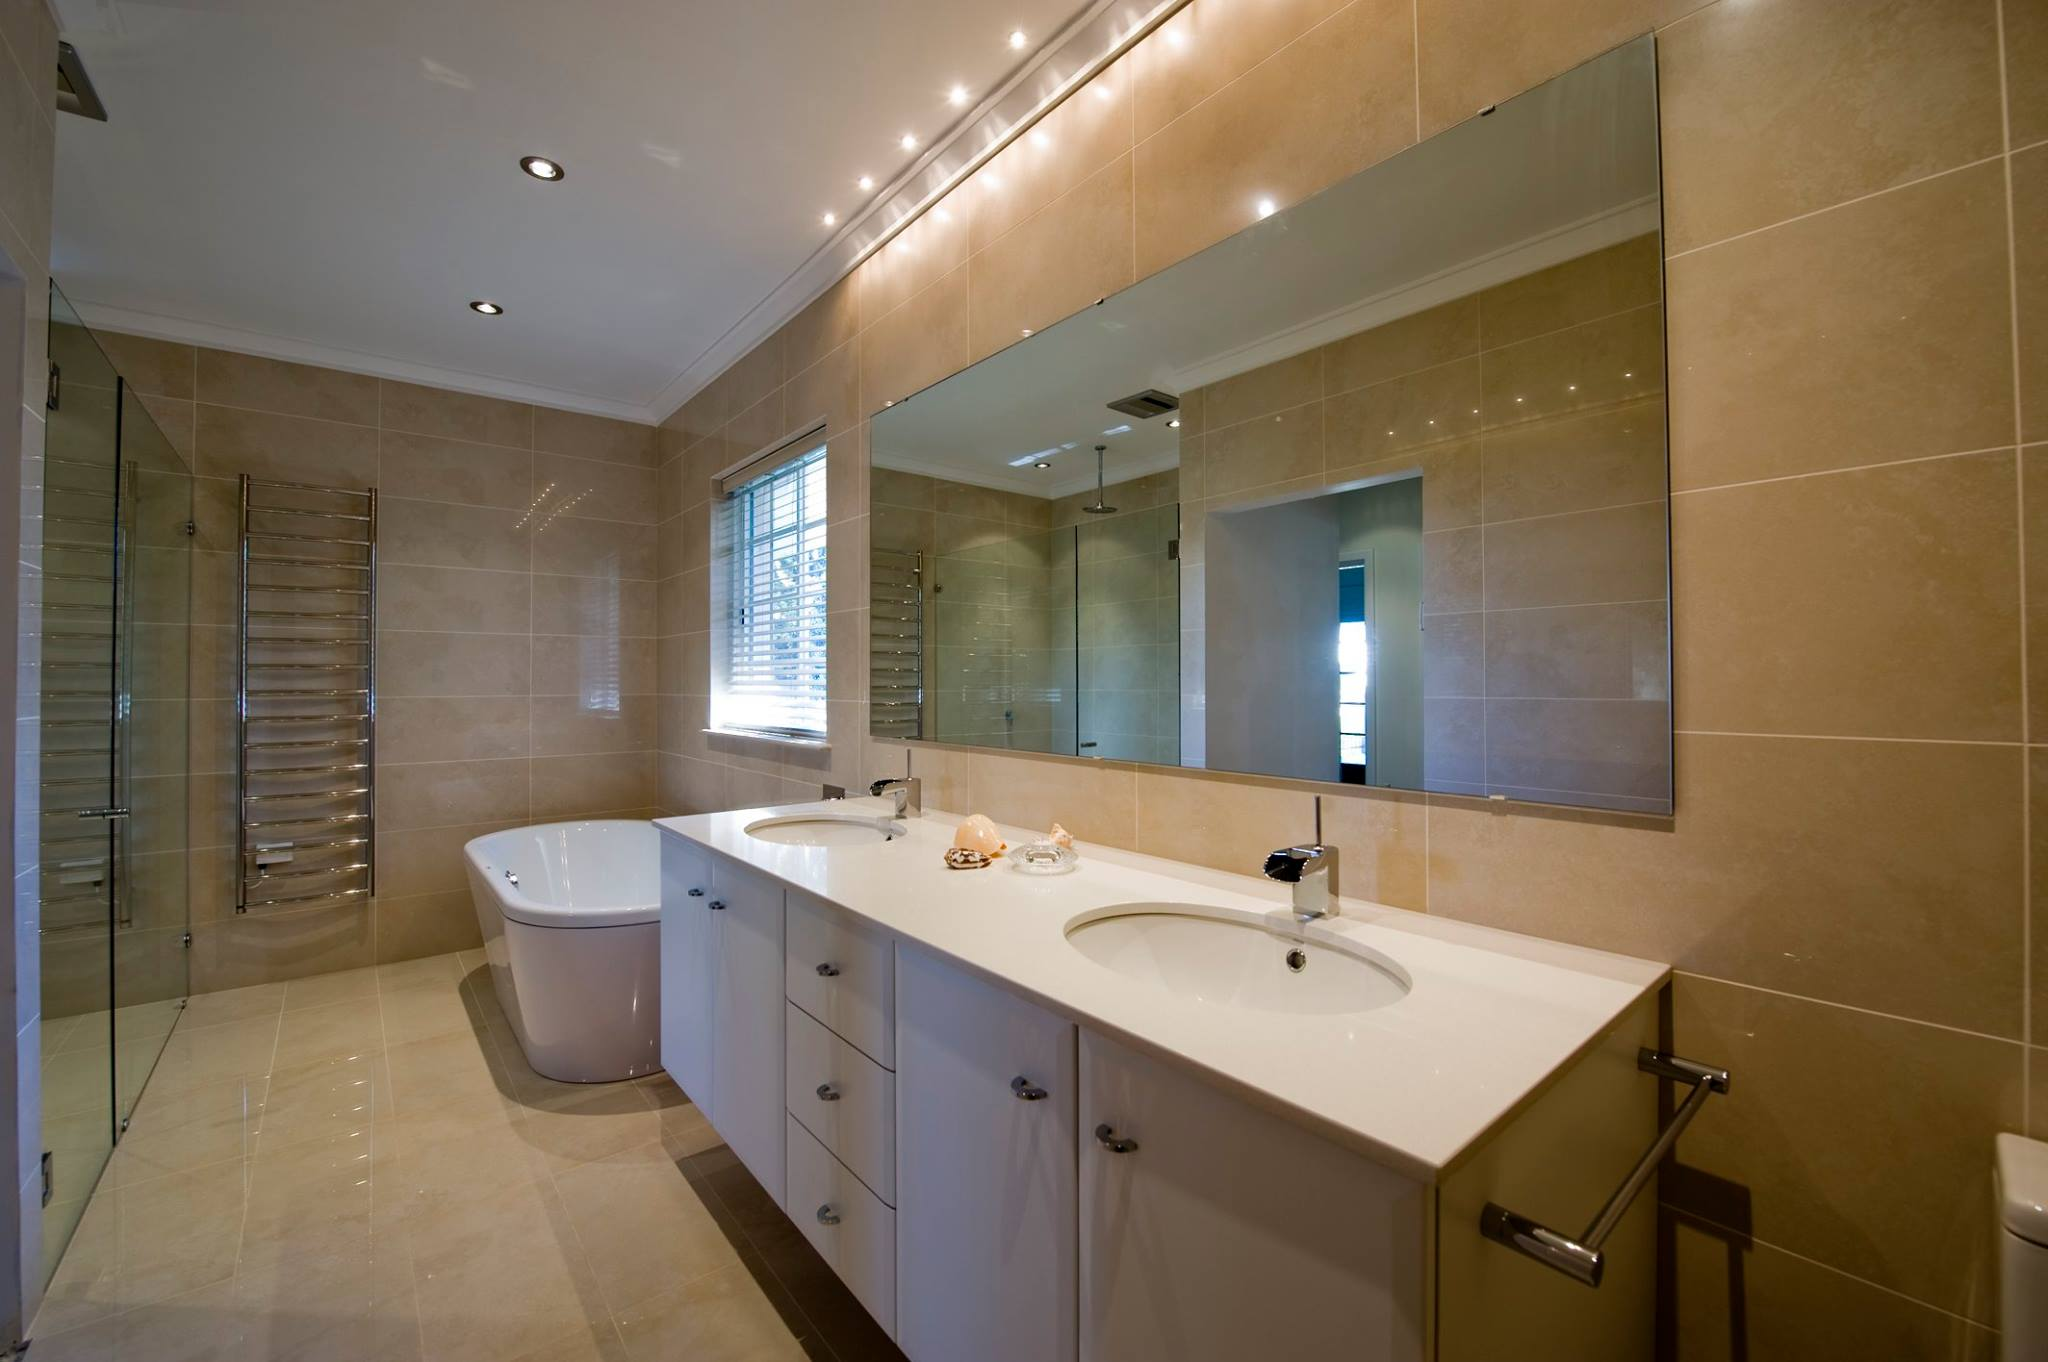 Bathroom Renovations Unley Call Mauro Of All Style On 0413 768 997